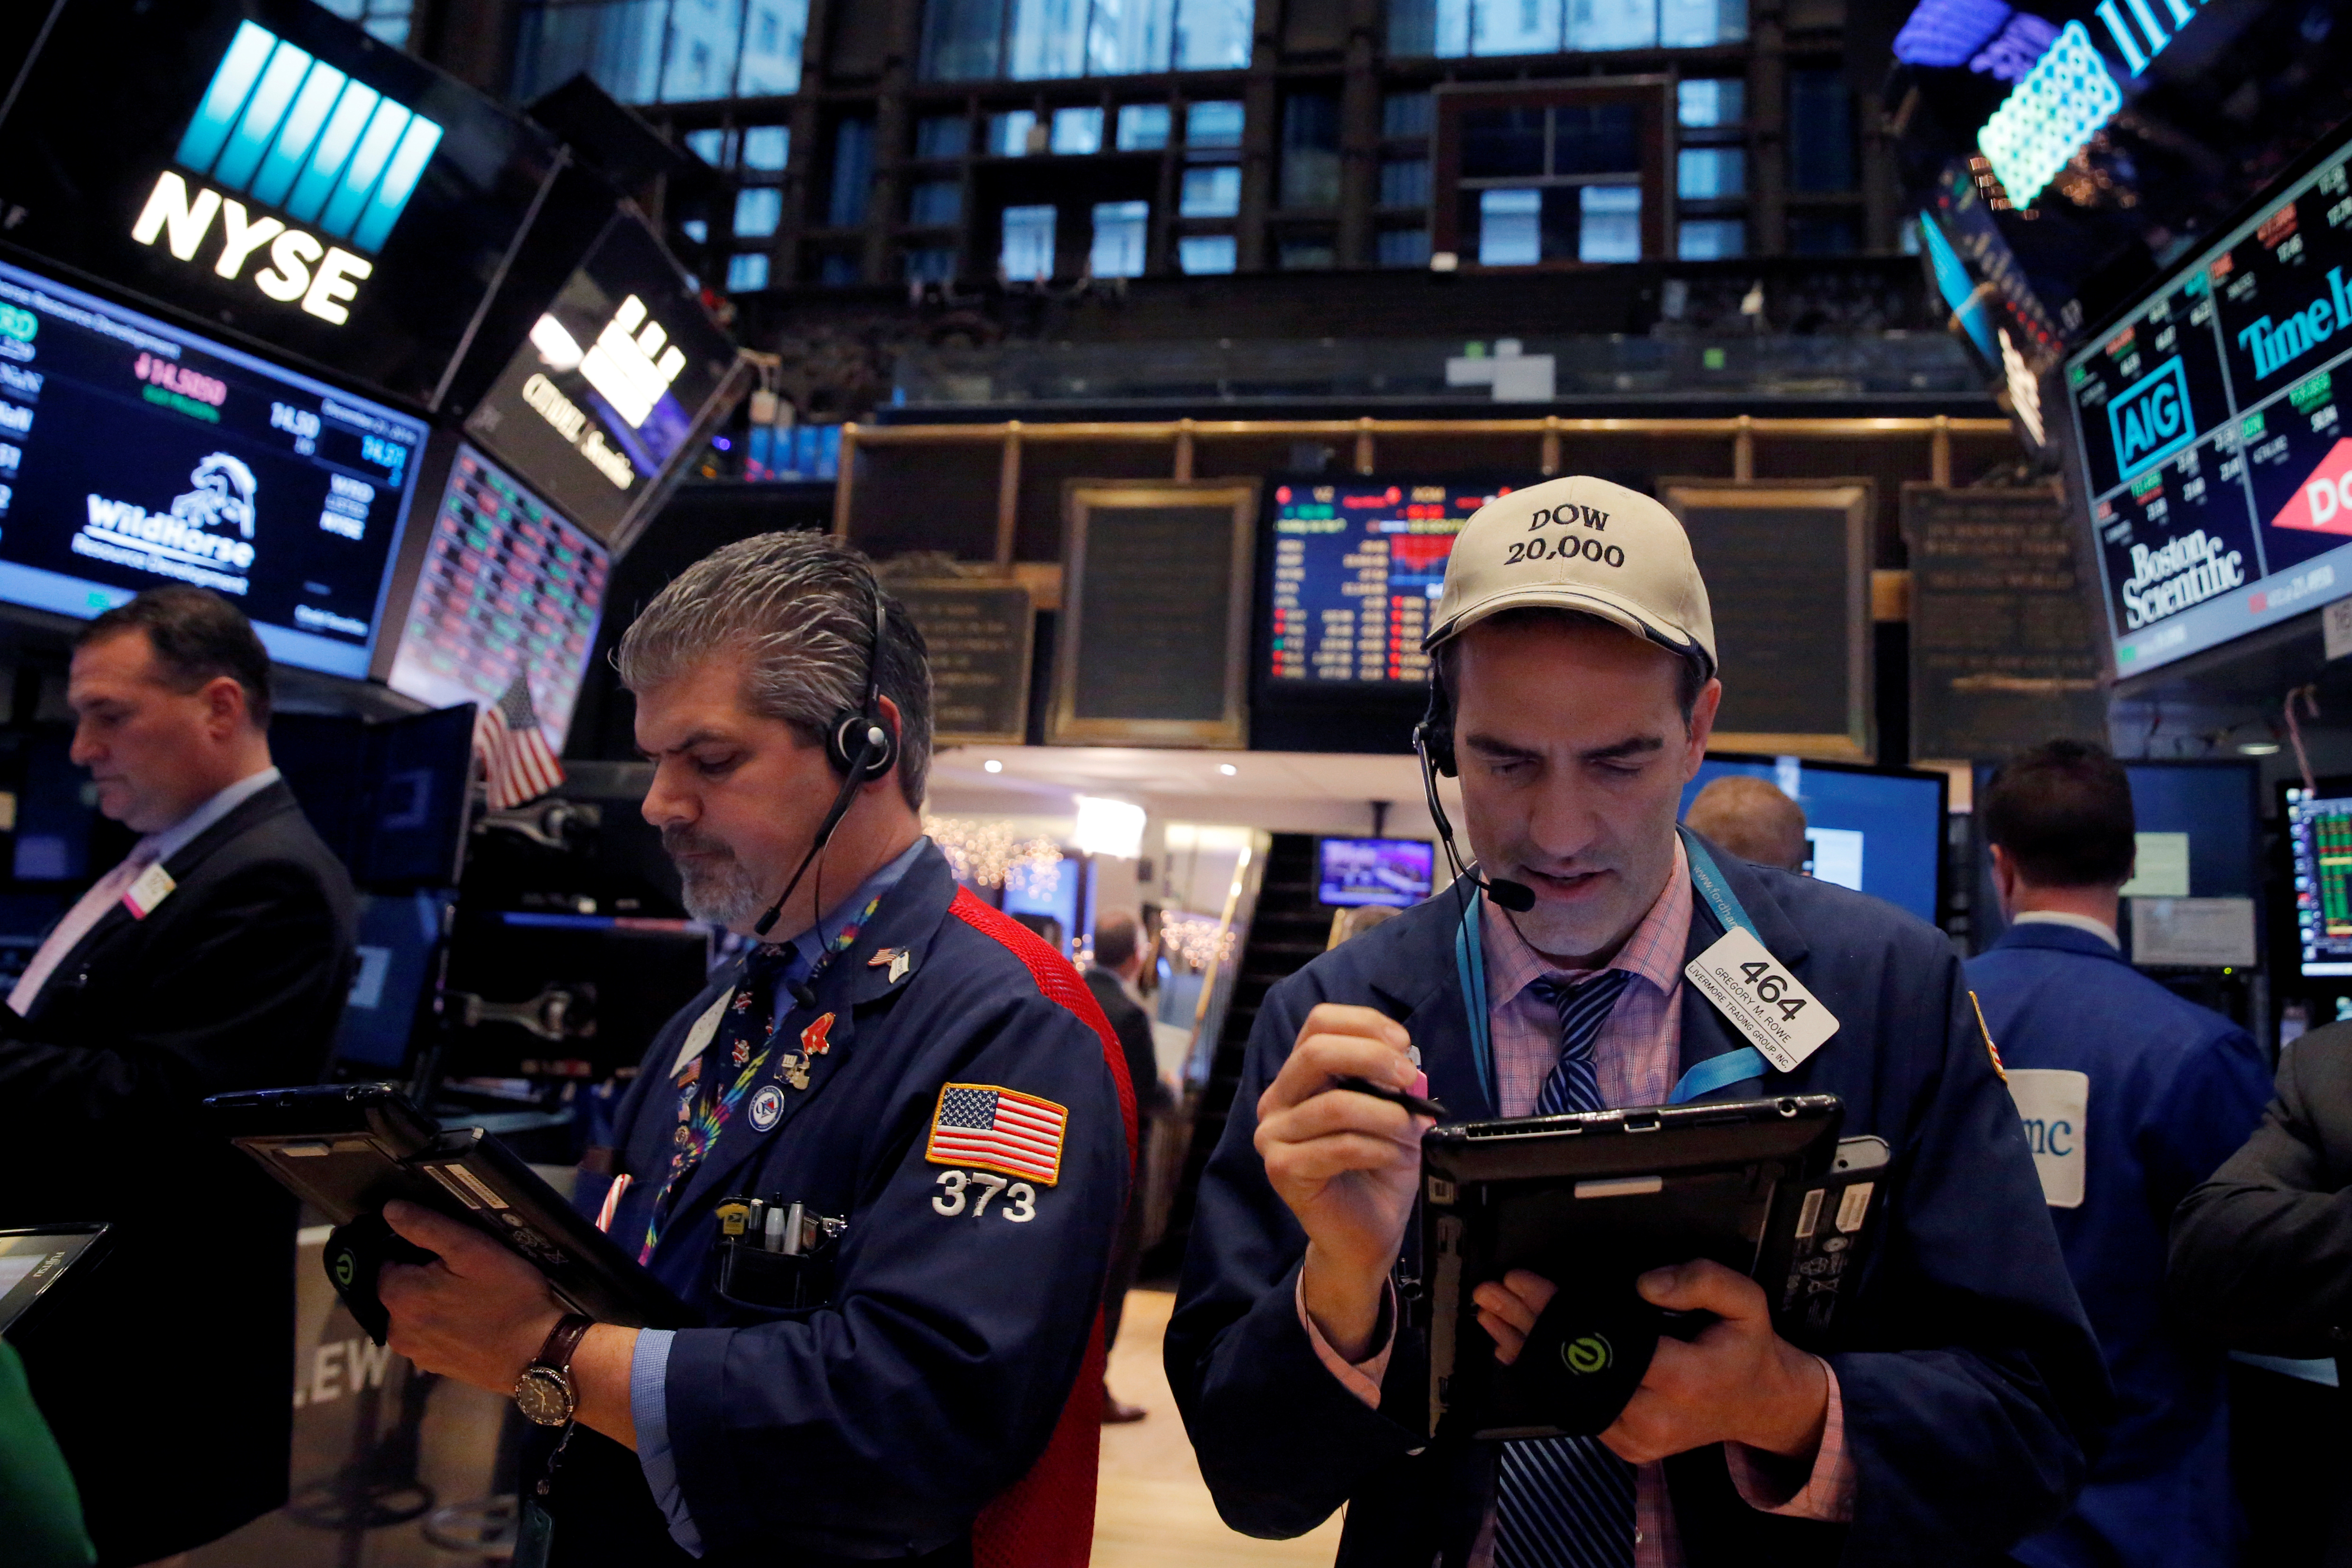 Traders work on the floor at the New York Stock Exchange (NYSE) in Manhattan, New York City, U.S., December 21, 2016. REUTERS/Andrew Kelly - RC1DF544C360